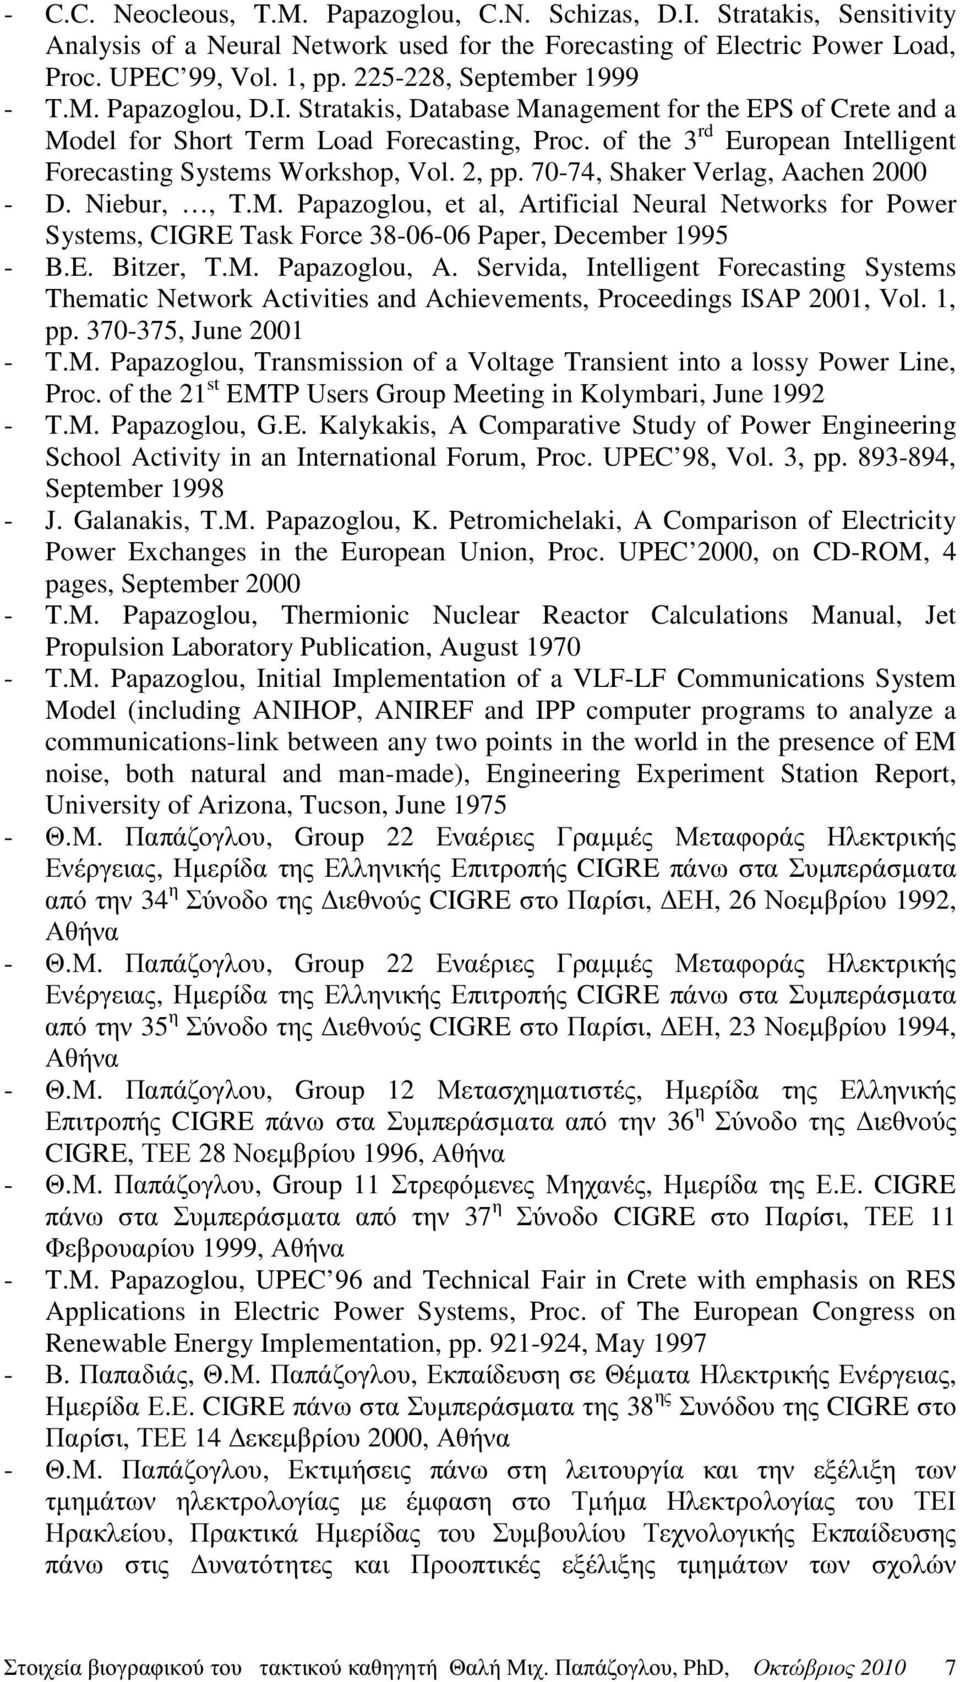 of the 3 rd European Intelligent Forecasting Systems Workshop, Vol. 2, pp. 70-74, Shaker Verlag, Aachen 2000 - D. Niebur,, T.M.